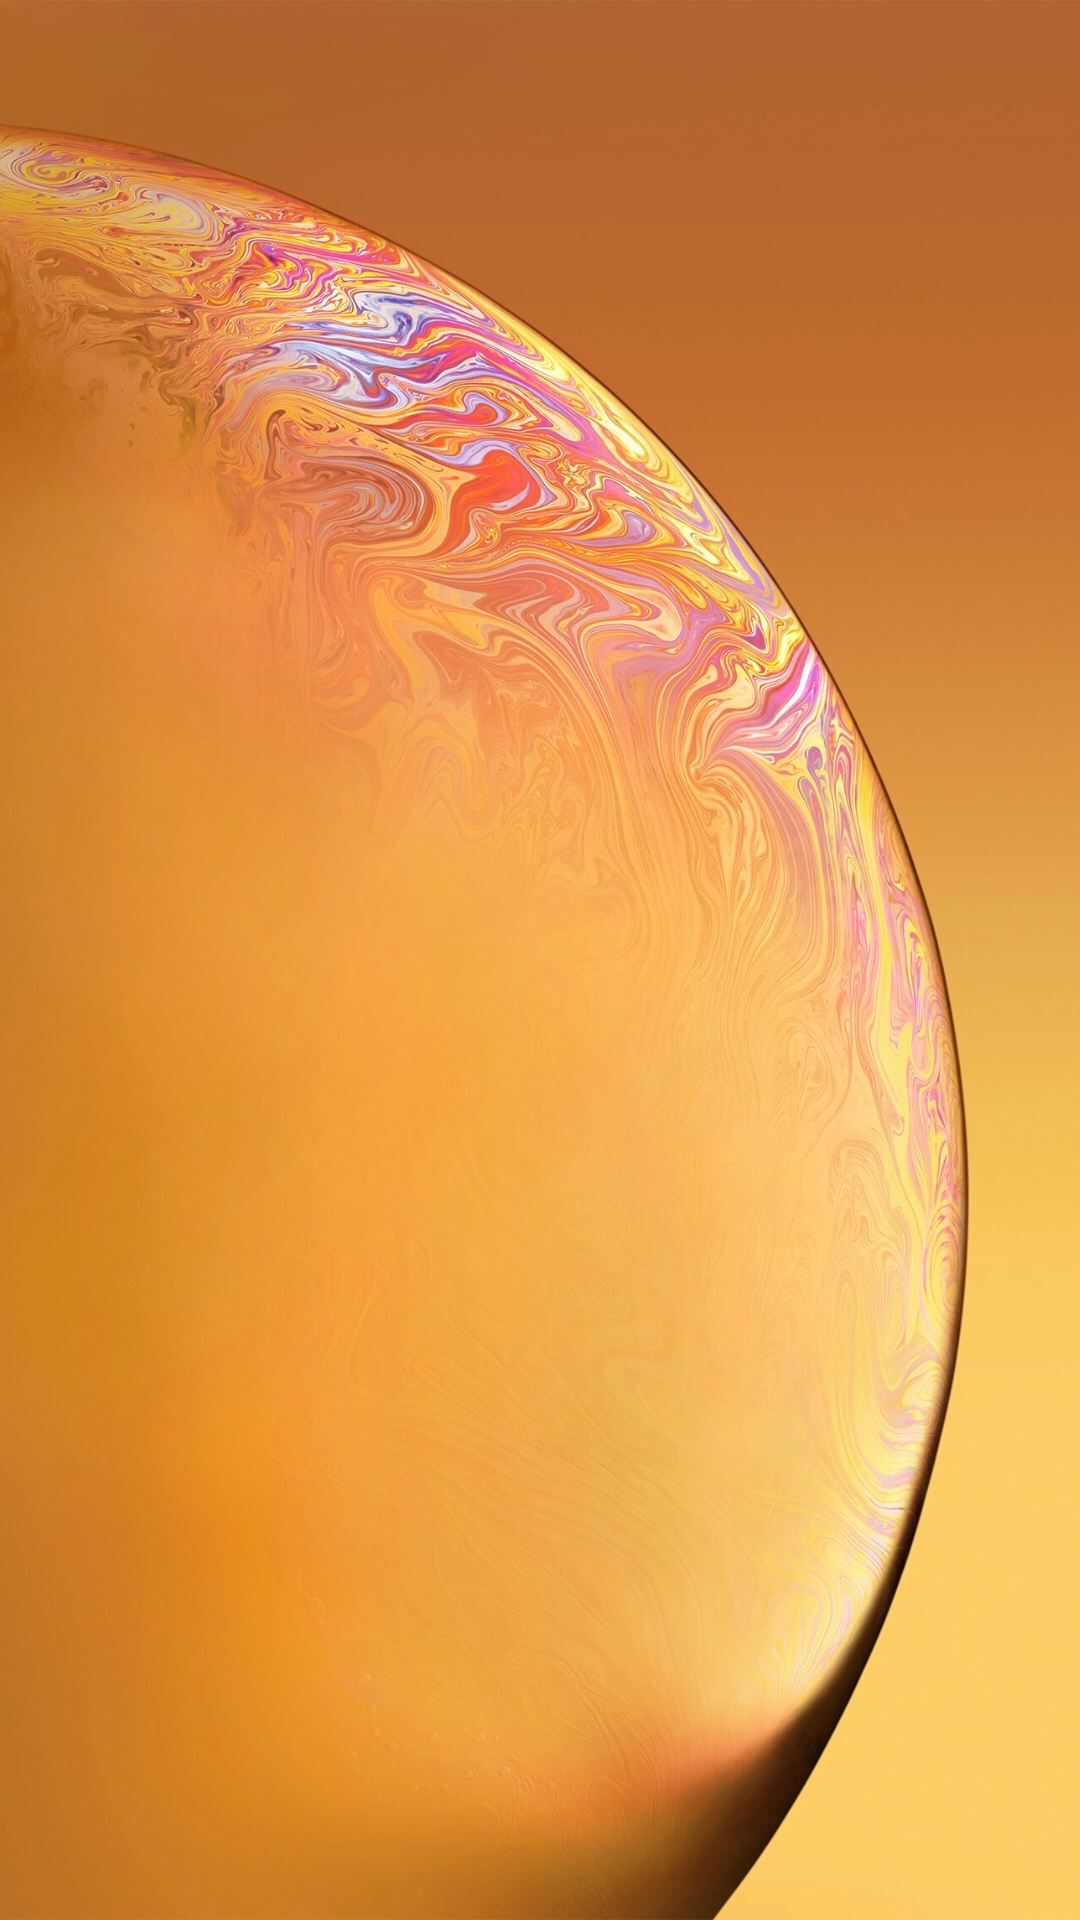 iPhone XR advertising wallpaper any iPhone 11